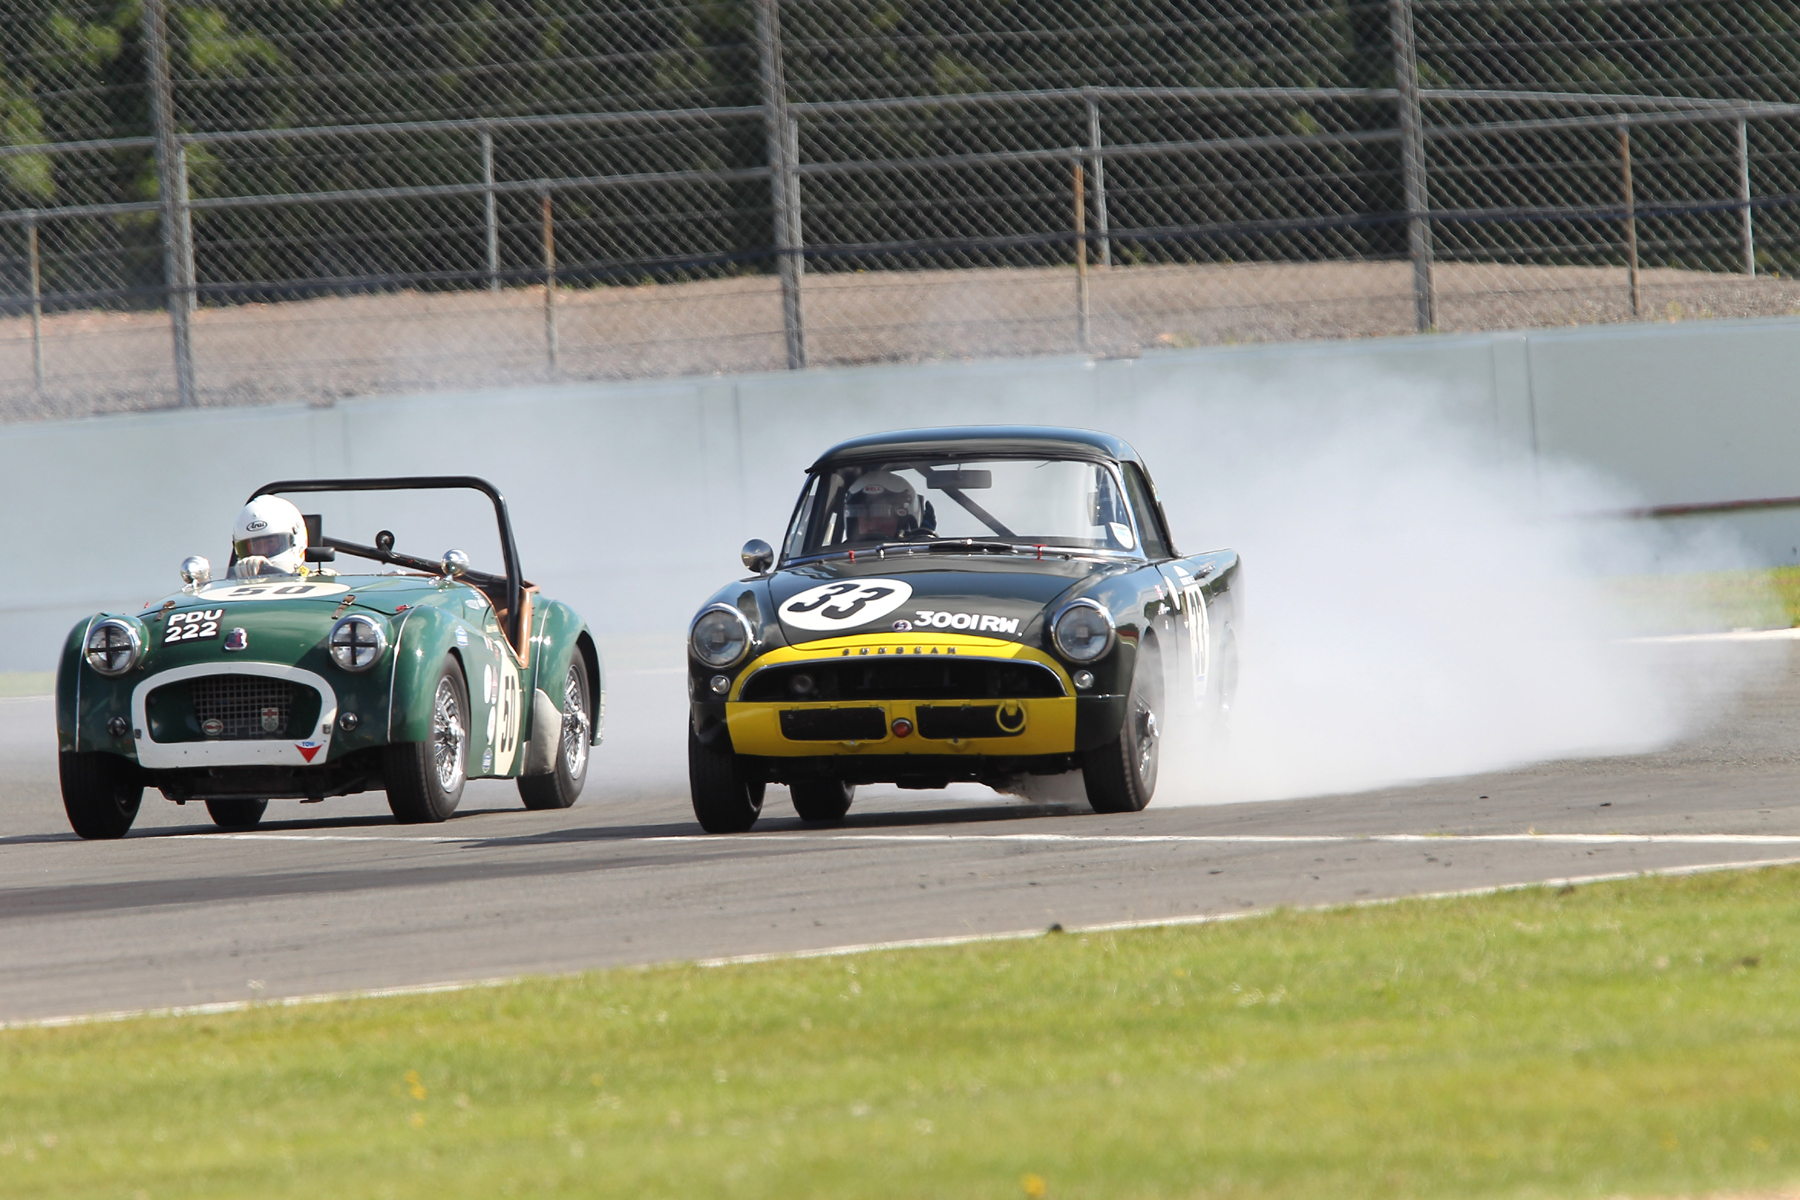 A burst oil pressure gauge pipe brought the Sunbeam Alpine Le Mans practice to a rapid halt and some interesting moments for fellow competitors. Mark Hoble on the inside qualified his TR2, 15th. Photo - Mick Walker